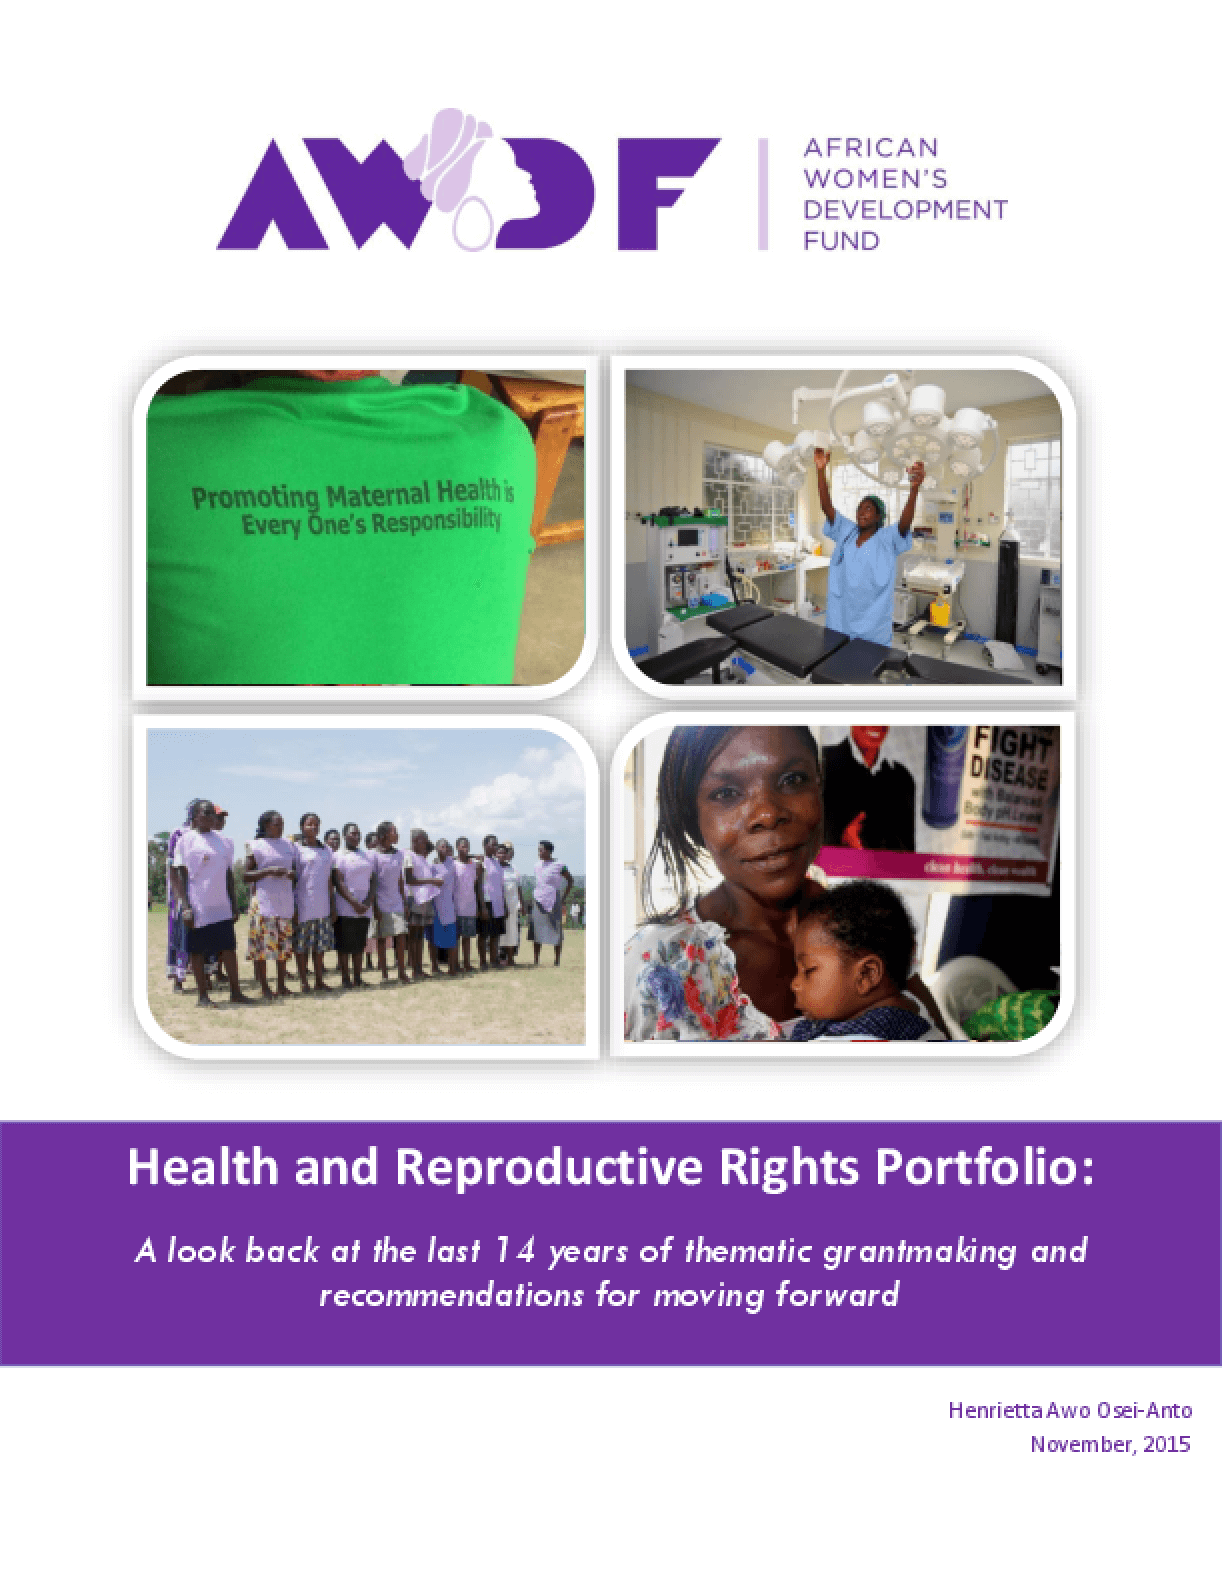 Health and Reproductive Rights Portfolio: A Look Back at the Last 14 Years of Thematic Grantmaking and Recommendations for Moving Forward